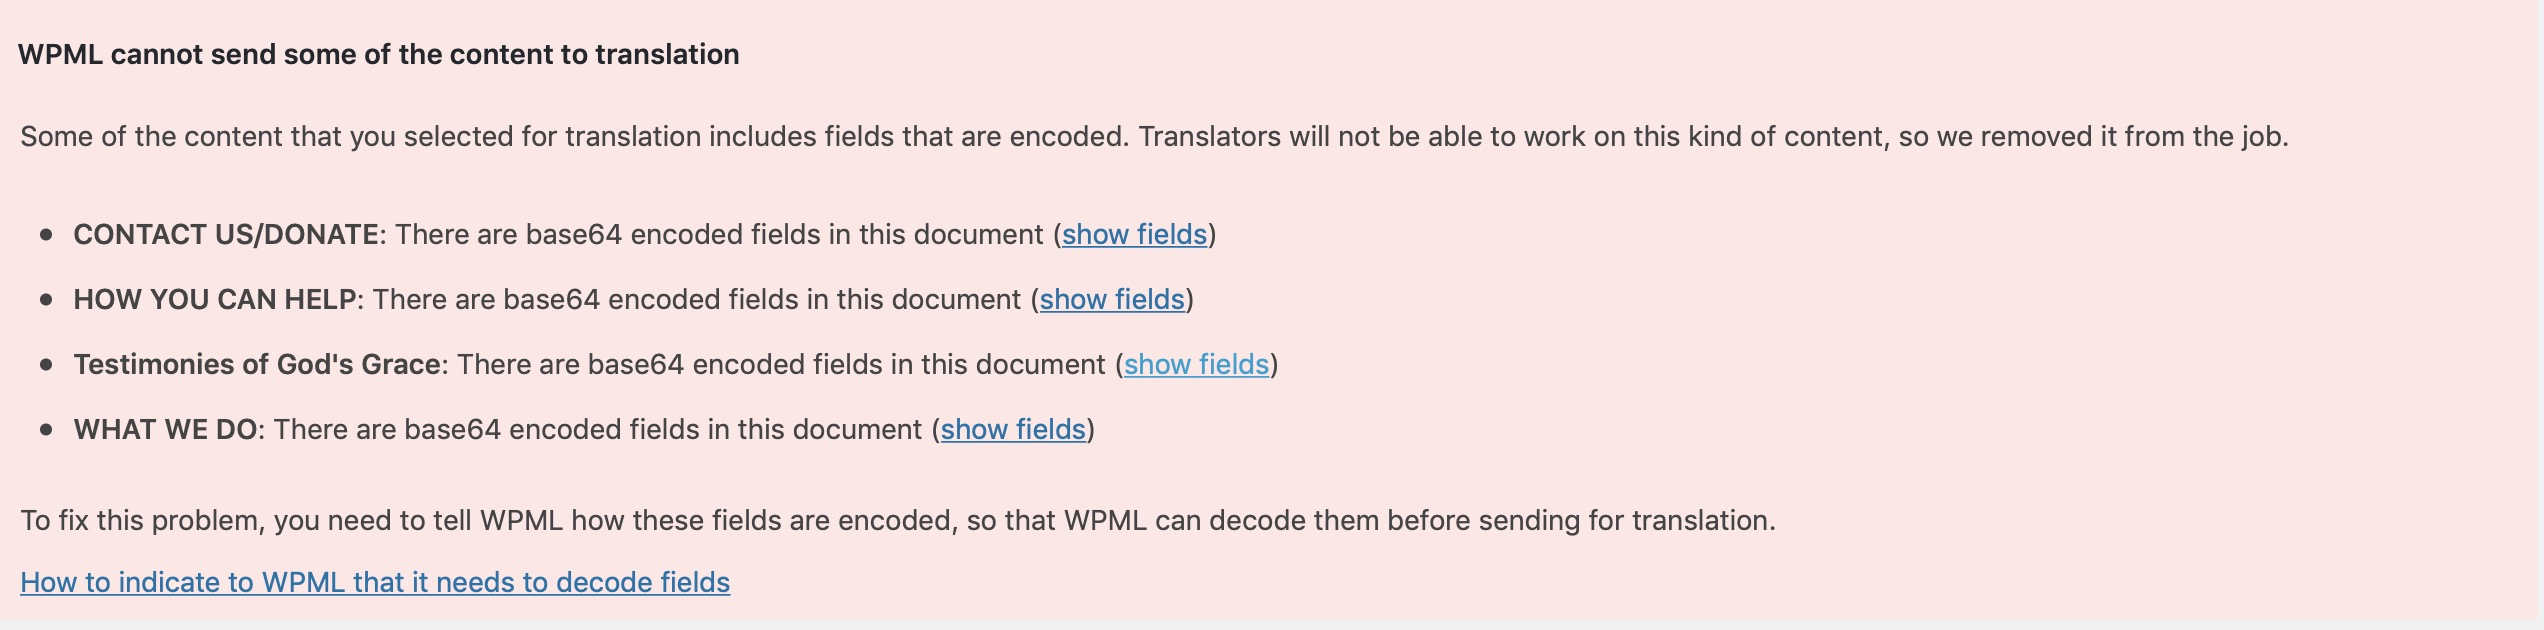 WPML cannot send some content.jpg